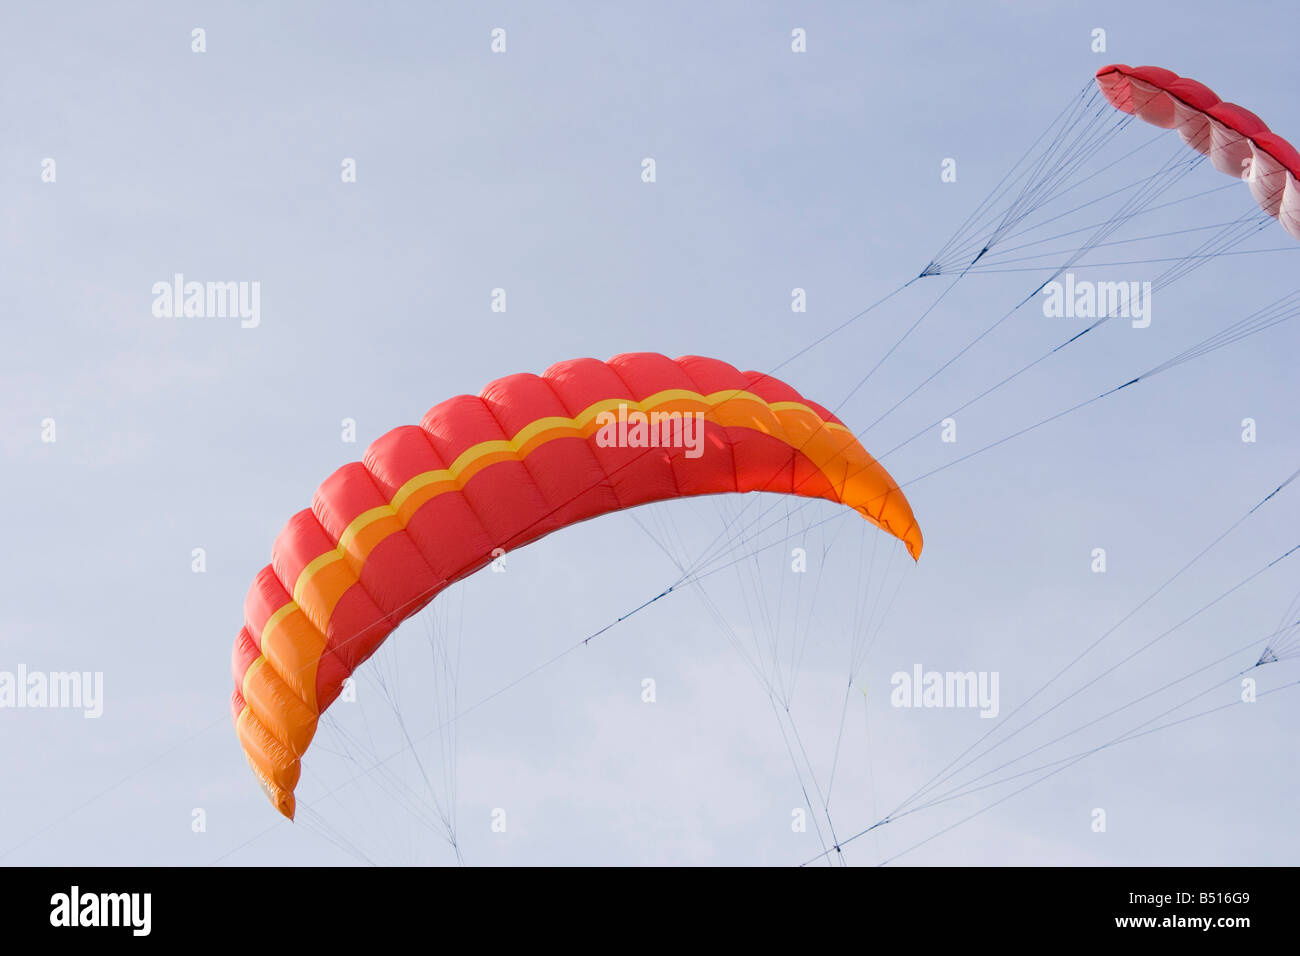 two power kites on the sky - nearly a collision - Stock Image